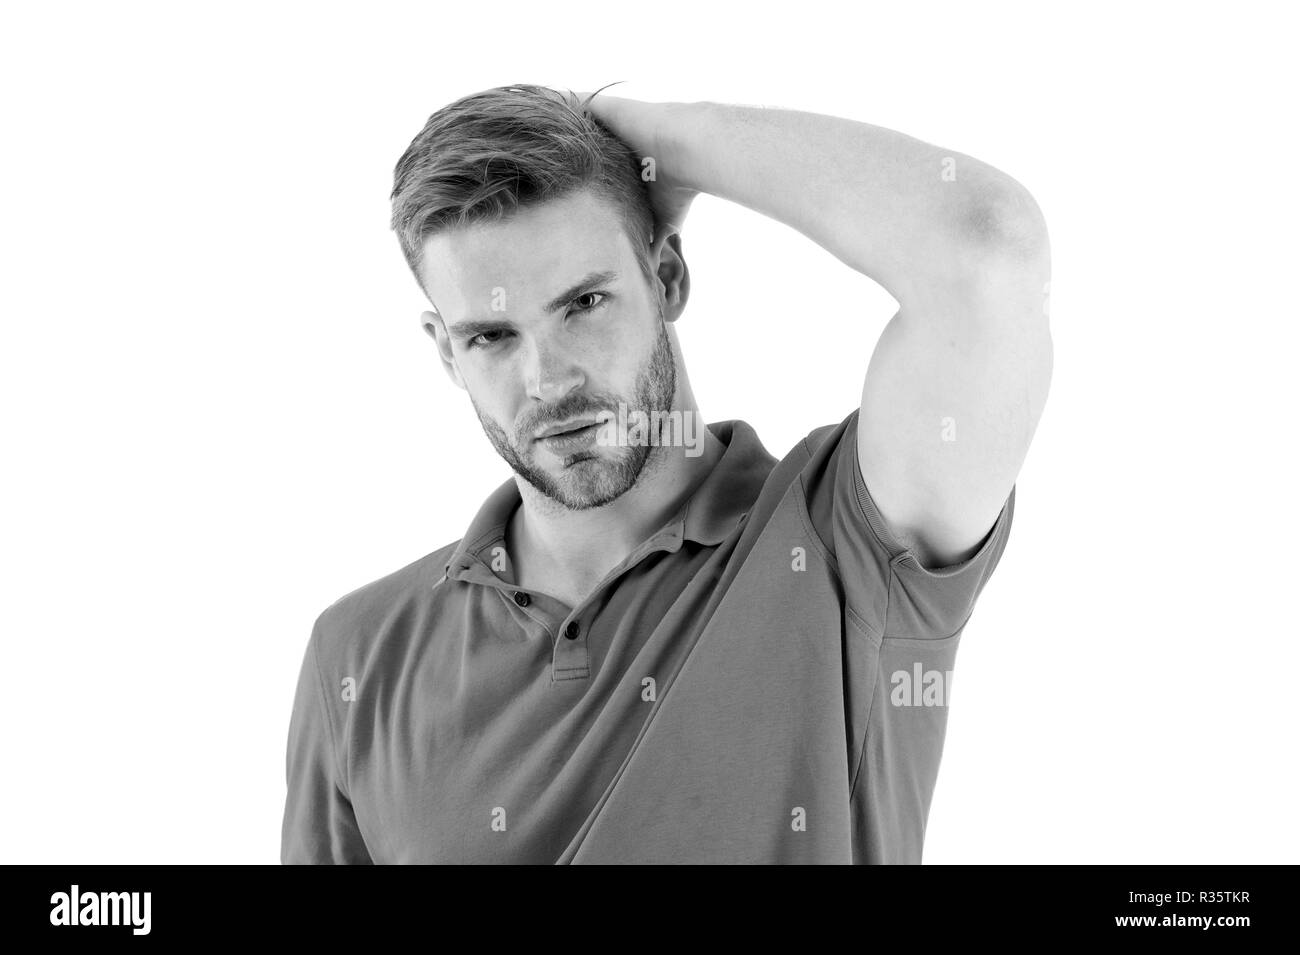 Effective antiperspirant. Man confident in his antiperspirant. Sportsman after training pleased with antiperspirant. Guy checks dry armpit satisfied with clean clothes. Prevent, reduce perspiration. - Stock Image